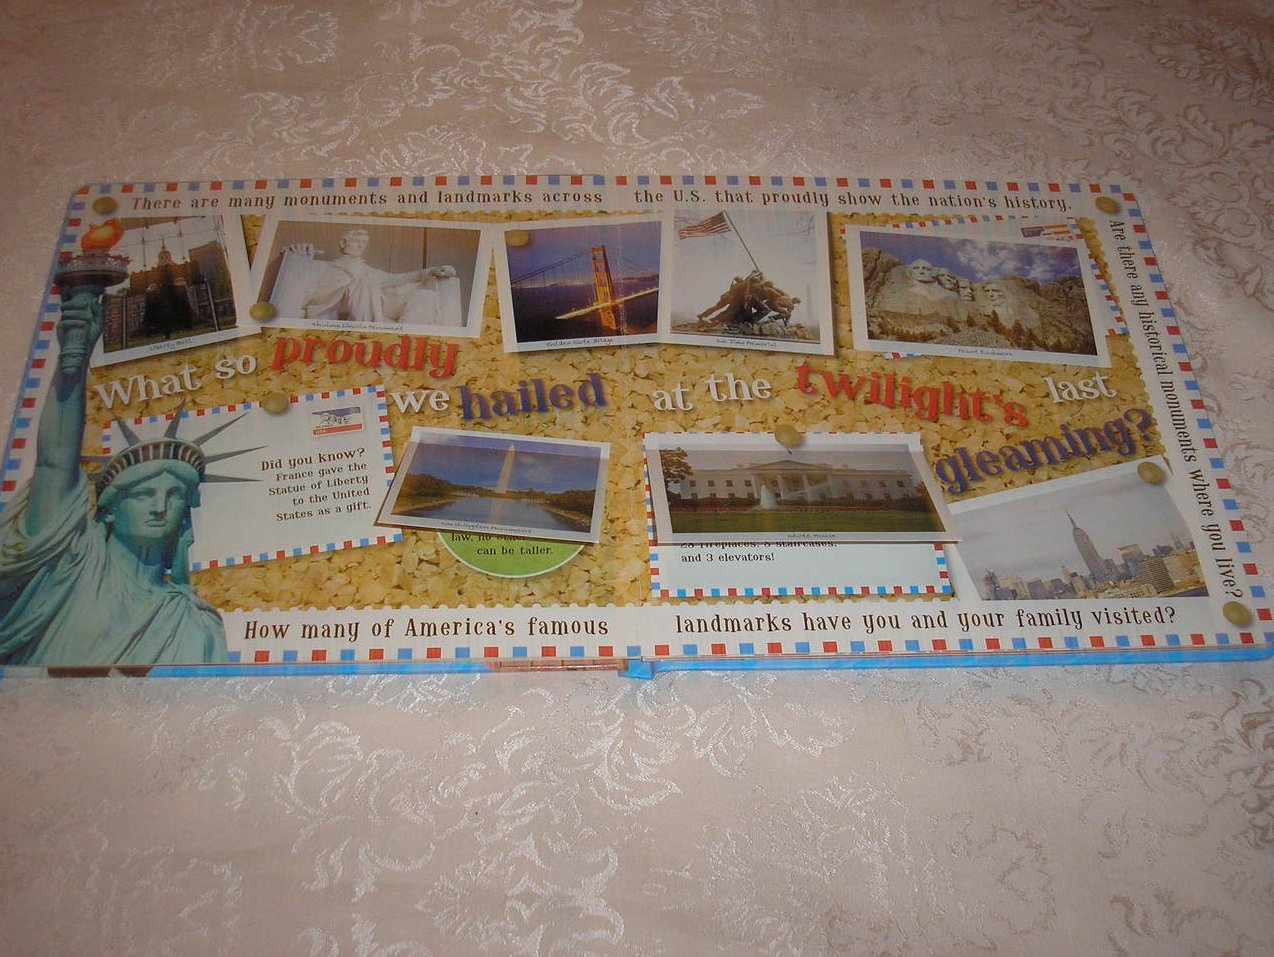 Image 2 of Oh Say! Can You See Francis Scott Key brand new large board book, CD, USA Poster